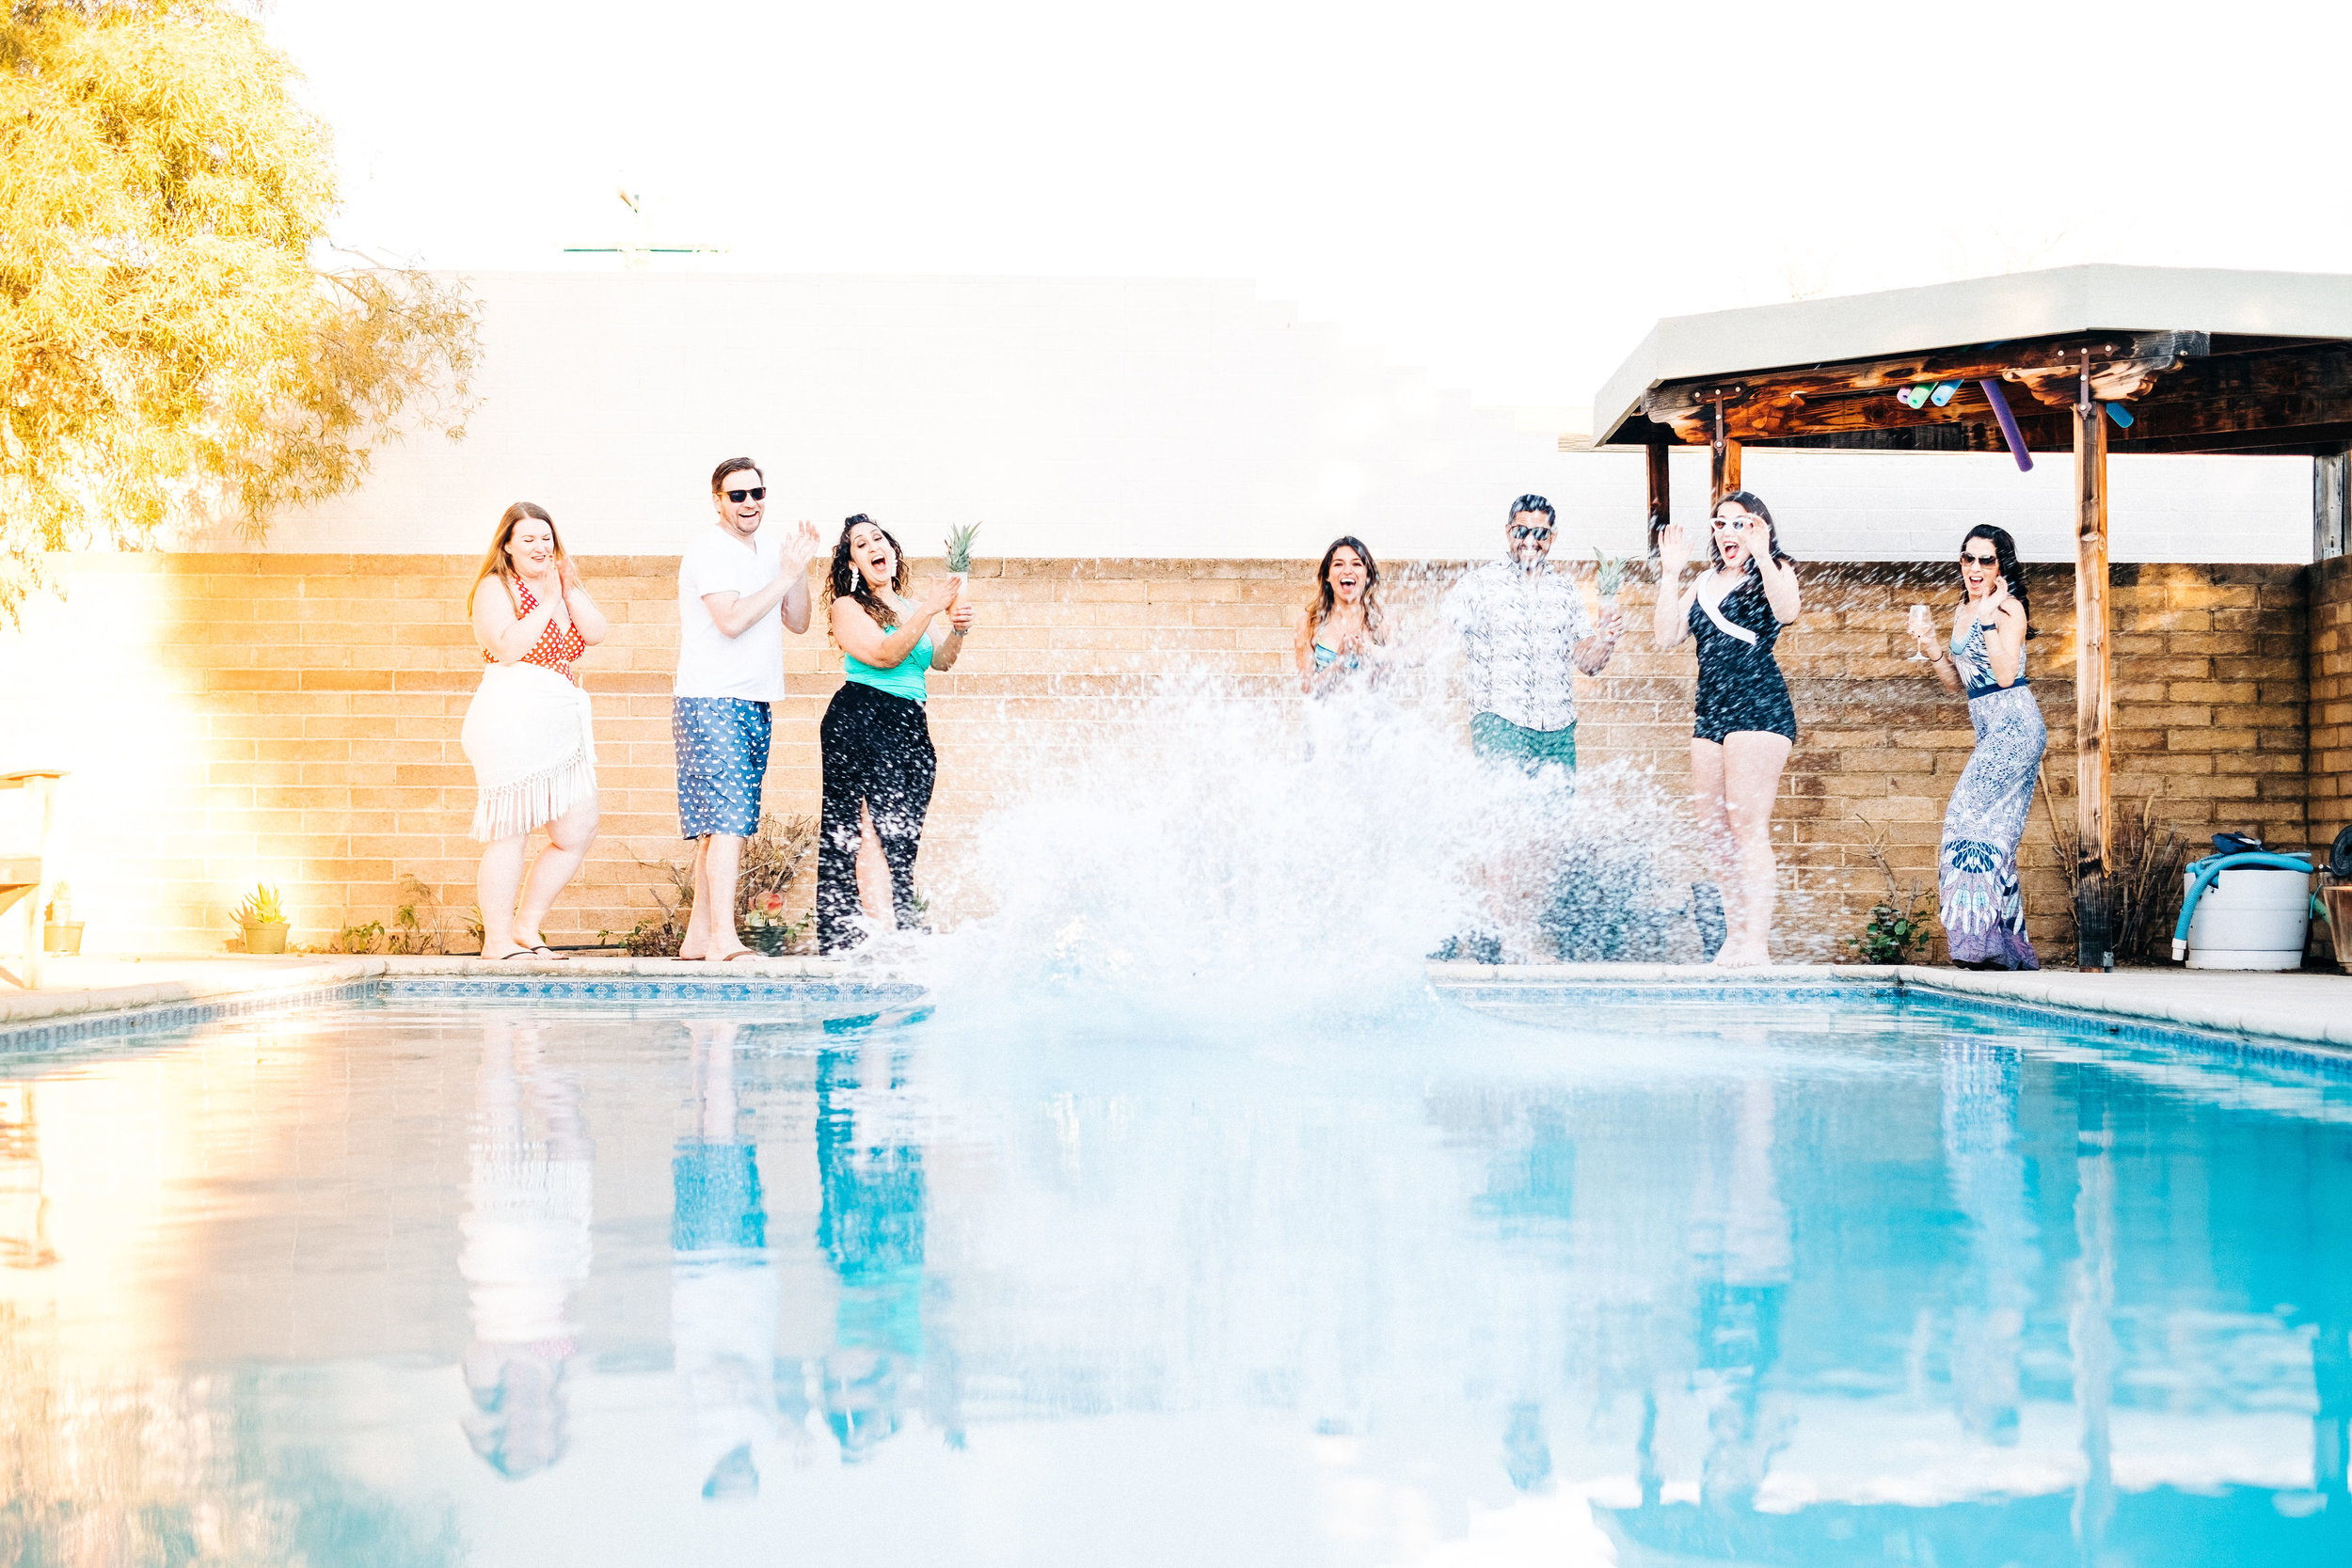 Andy-Shepard-Photography-Tucson-Pool-Party-99.jpg